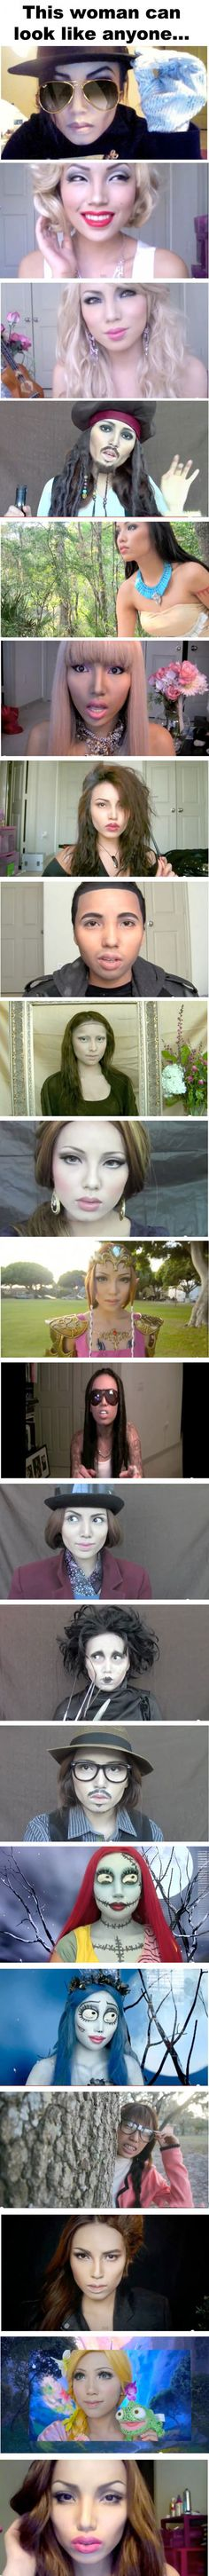 The incredible power of makeup.